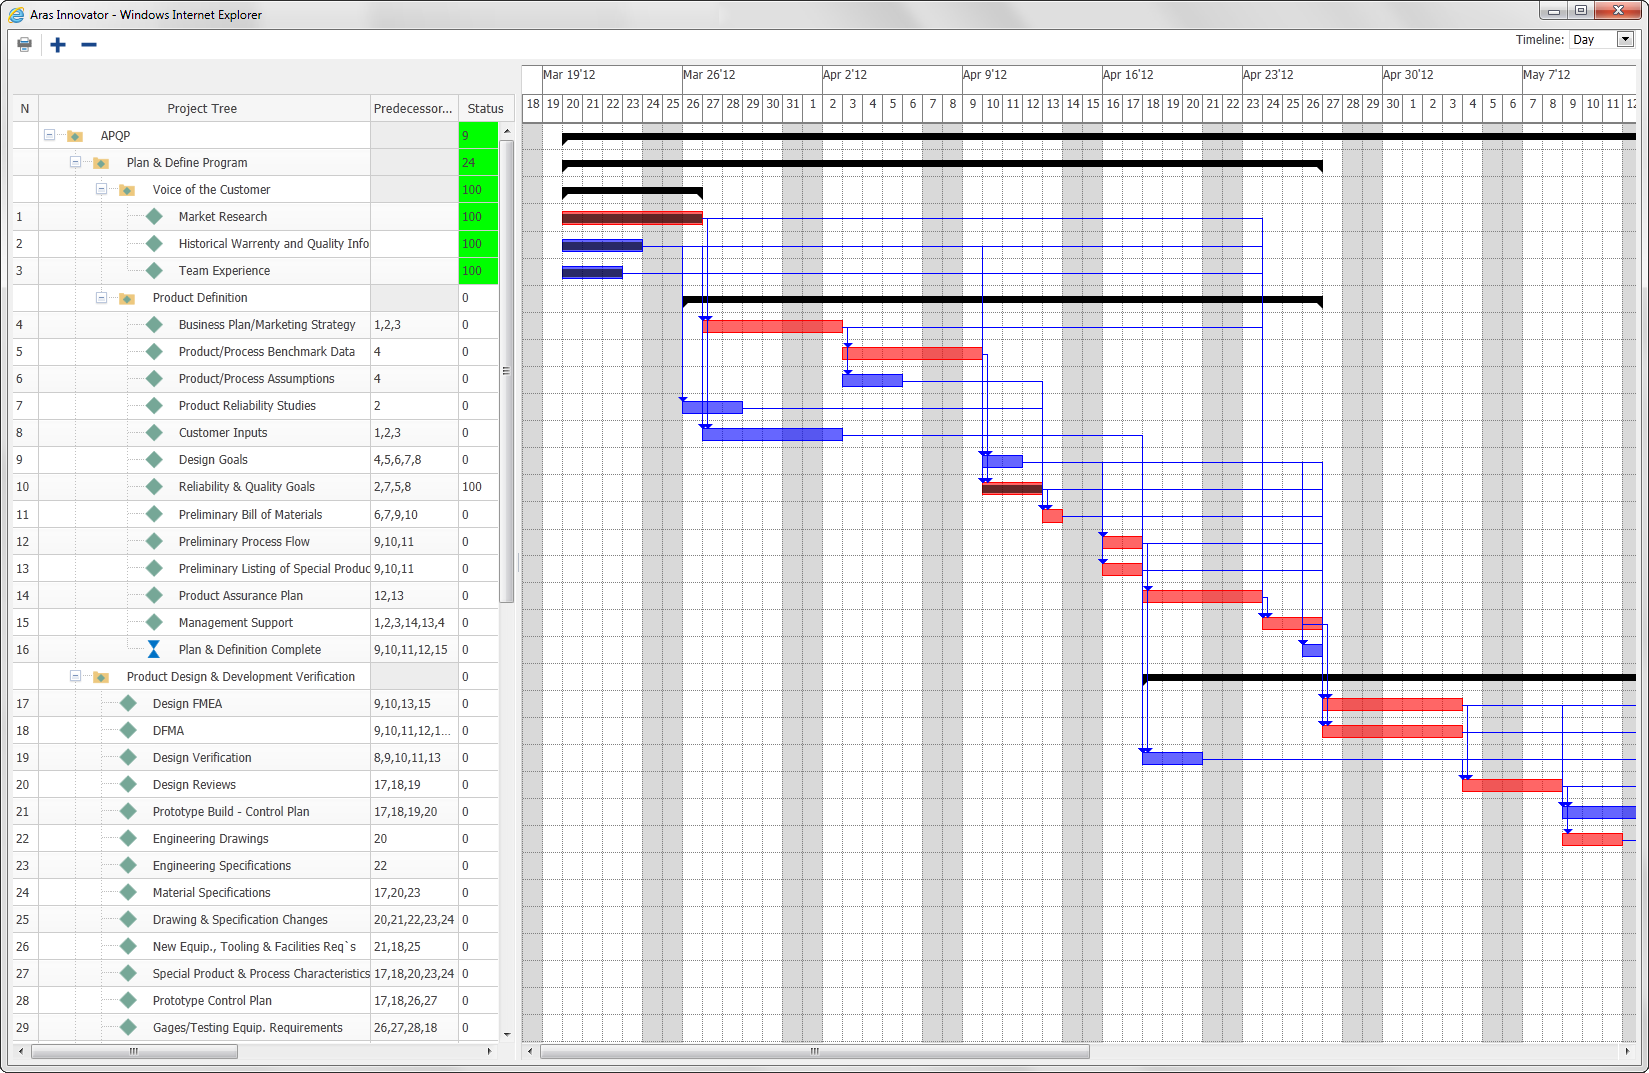 Aras screenshots steepgraph systems pvt ltd steepgraph systems gantt chart displays task activity schedule deliverable s dependencies critical path and milestones real time gantt chart provides visibility for nvjuhfo Images